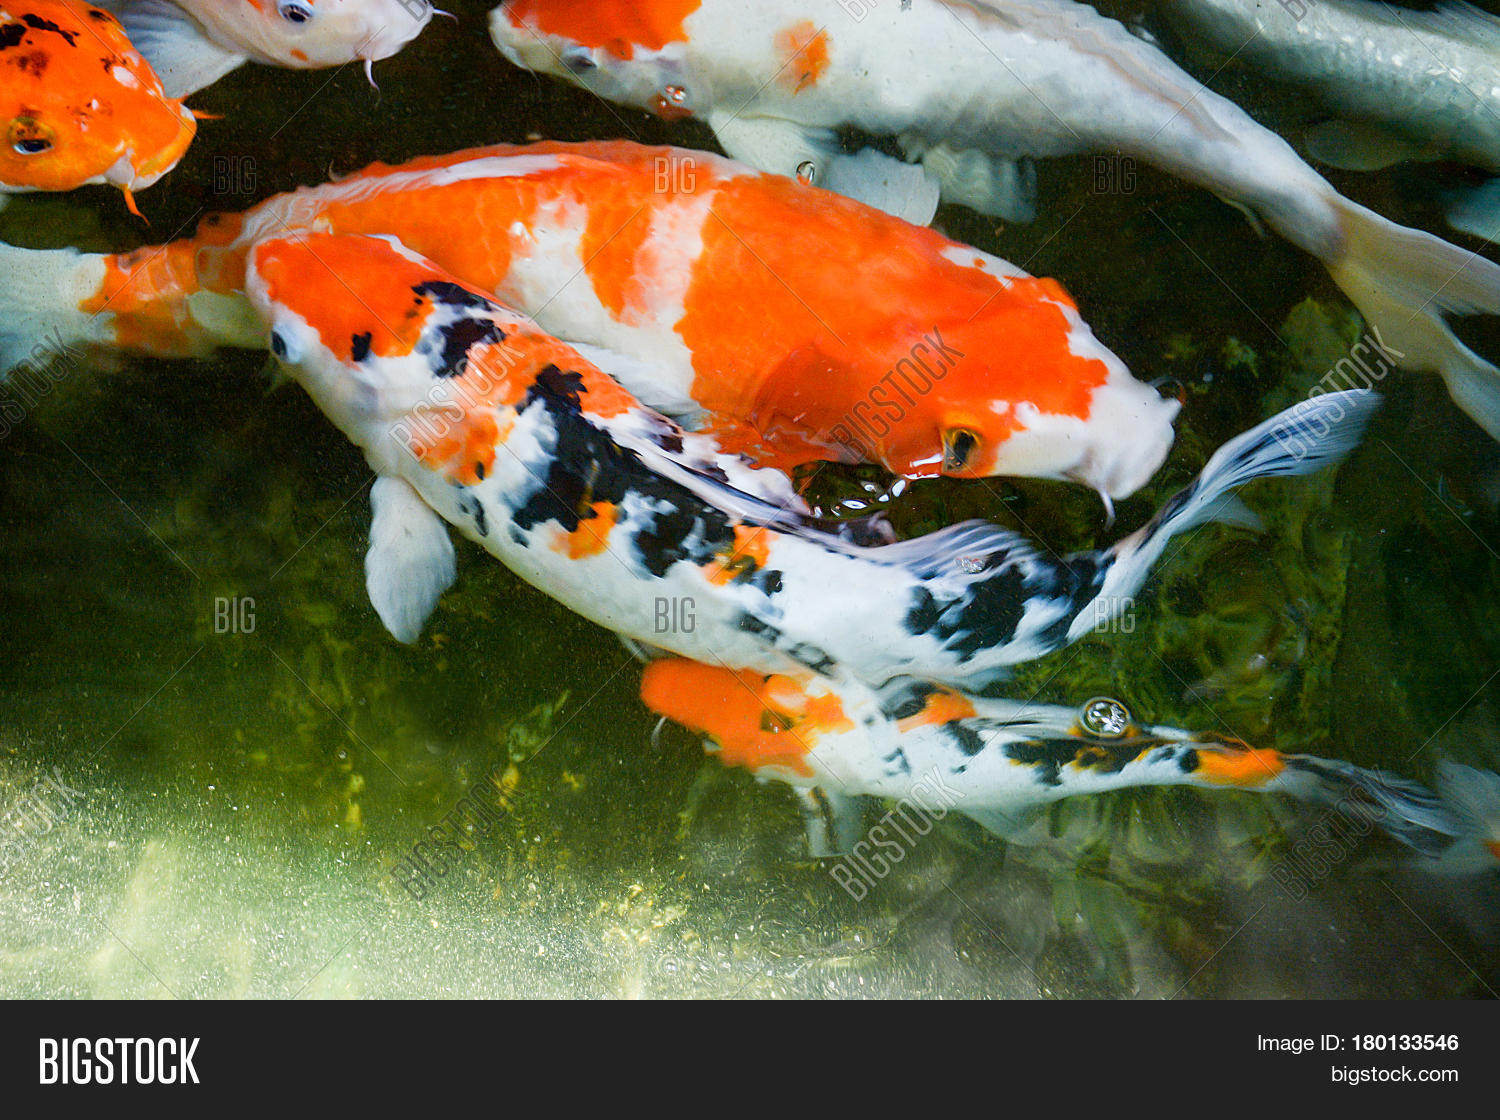 Freshwater fish koi - Colorful Fish Or Fancy Carp Freshwater Fish Of The Carp Fancy Carp Or Koi Fish Swimming